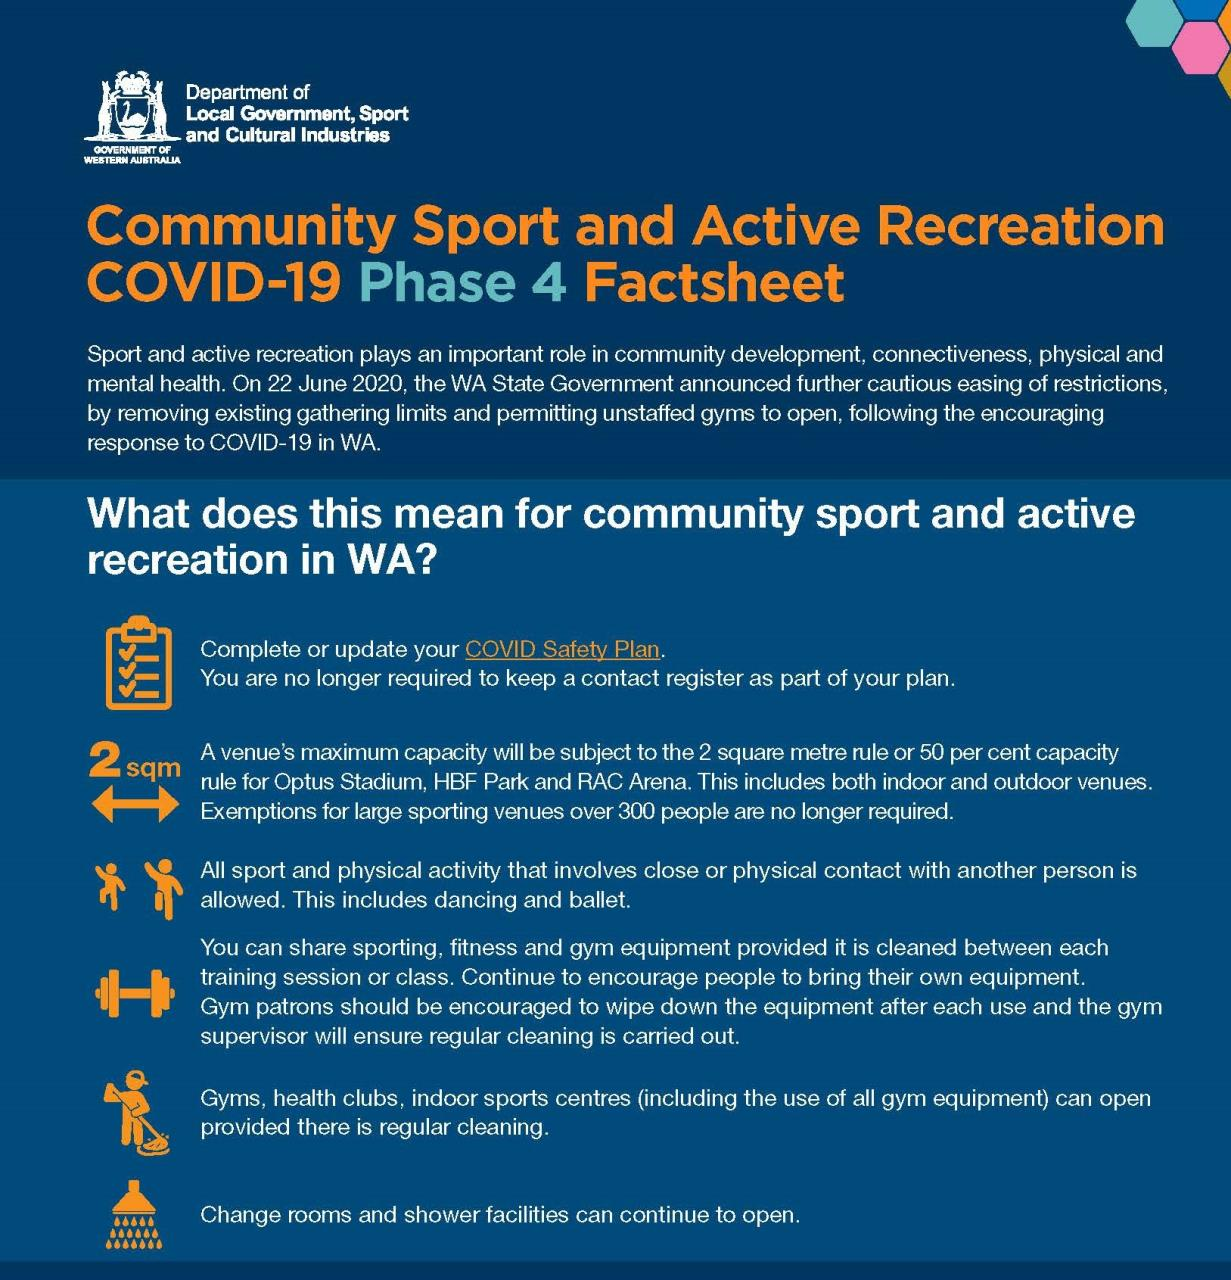 Community Sport & Recreation Phase 4 COVID Facts